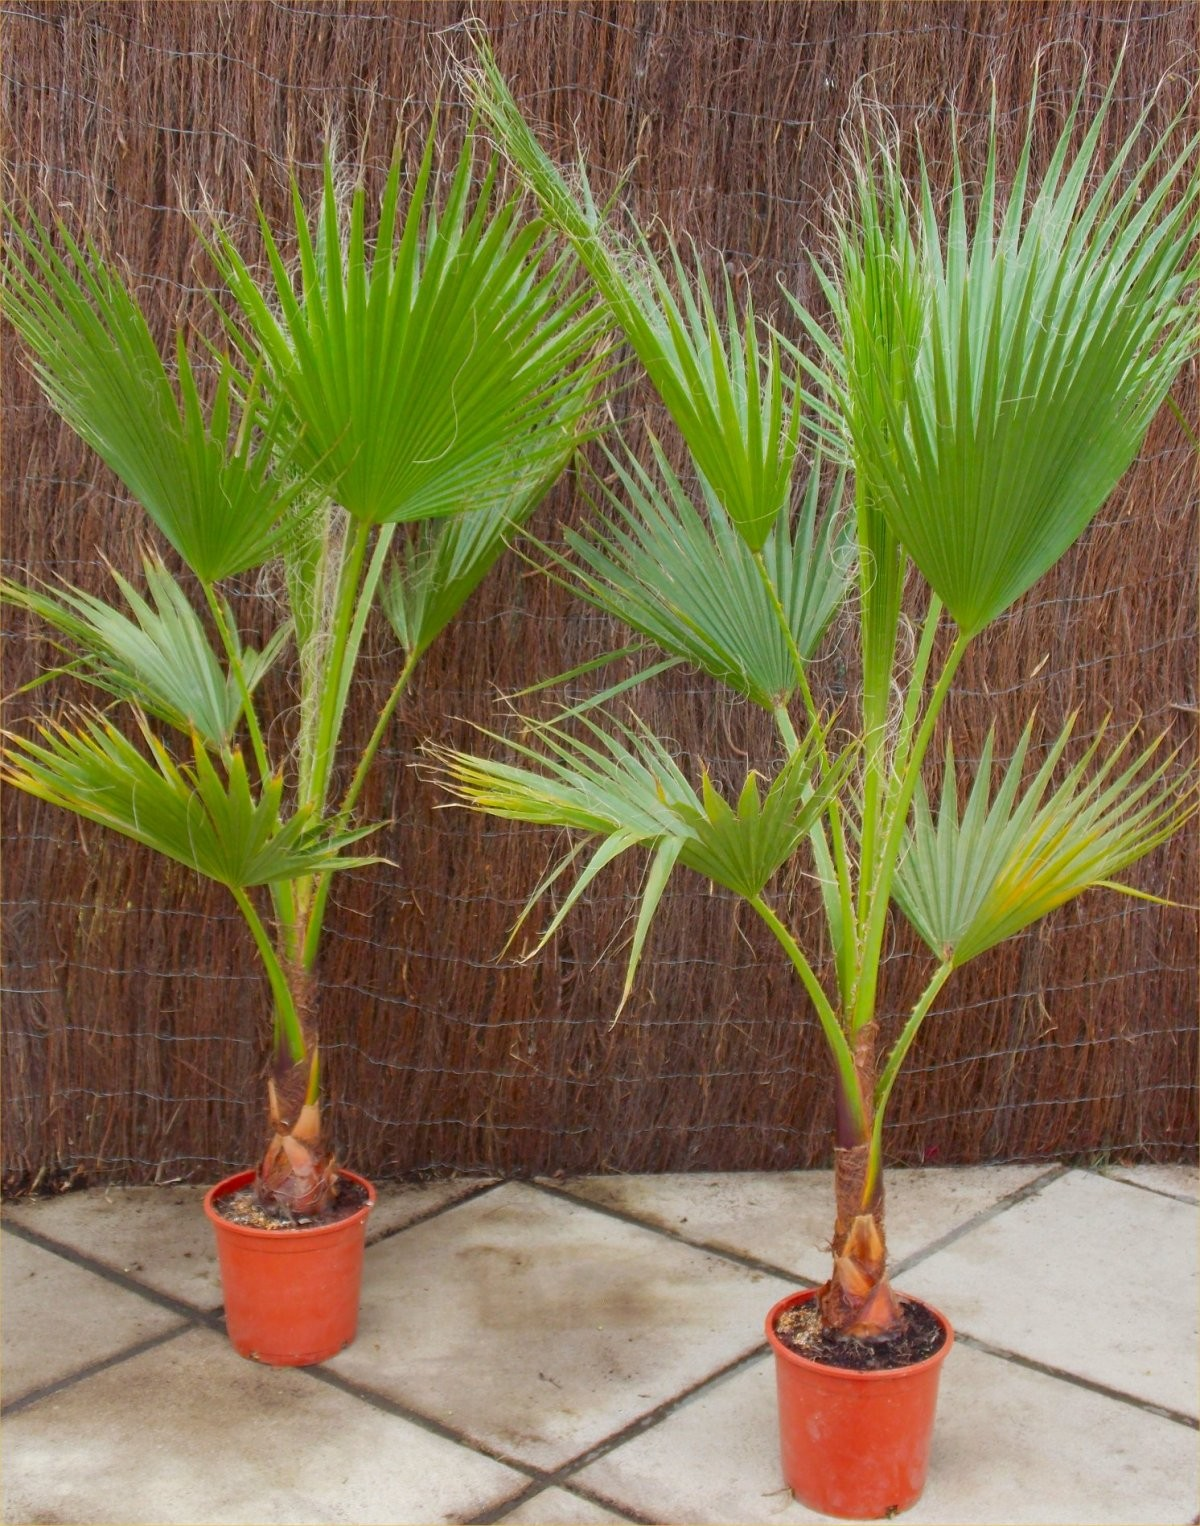 SPECIAL DEAL   Mexican Fan Palms   Washingtonia Robusta For Patio Or Deck    Approx 100 120cms Tall